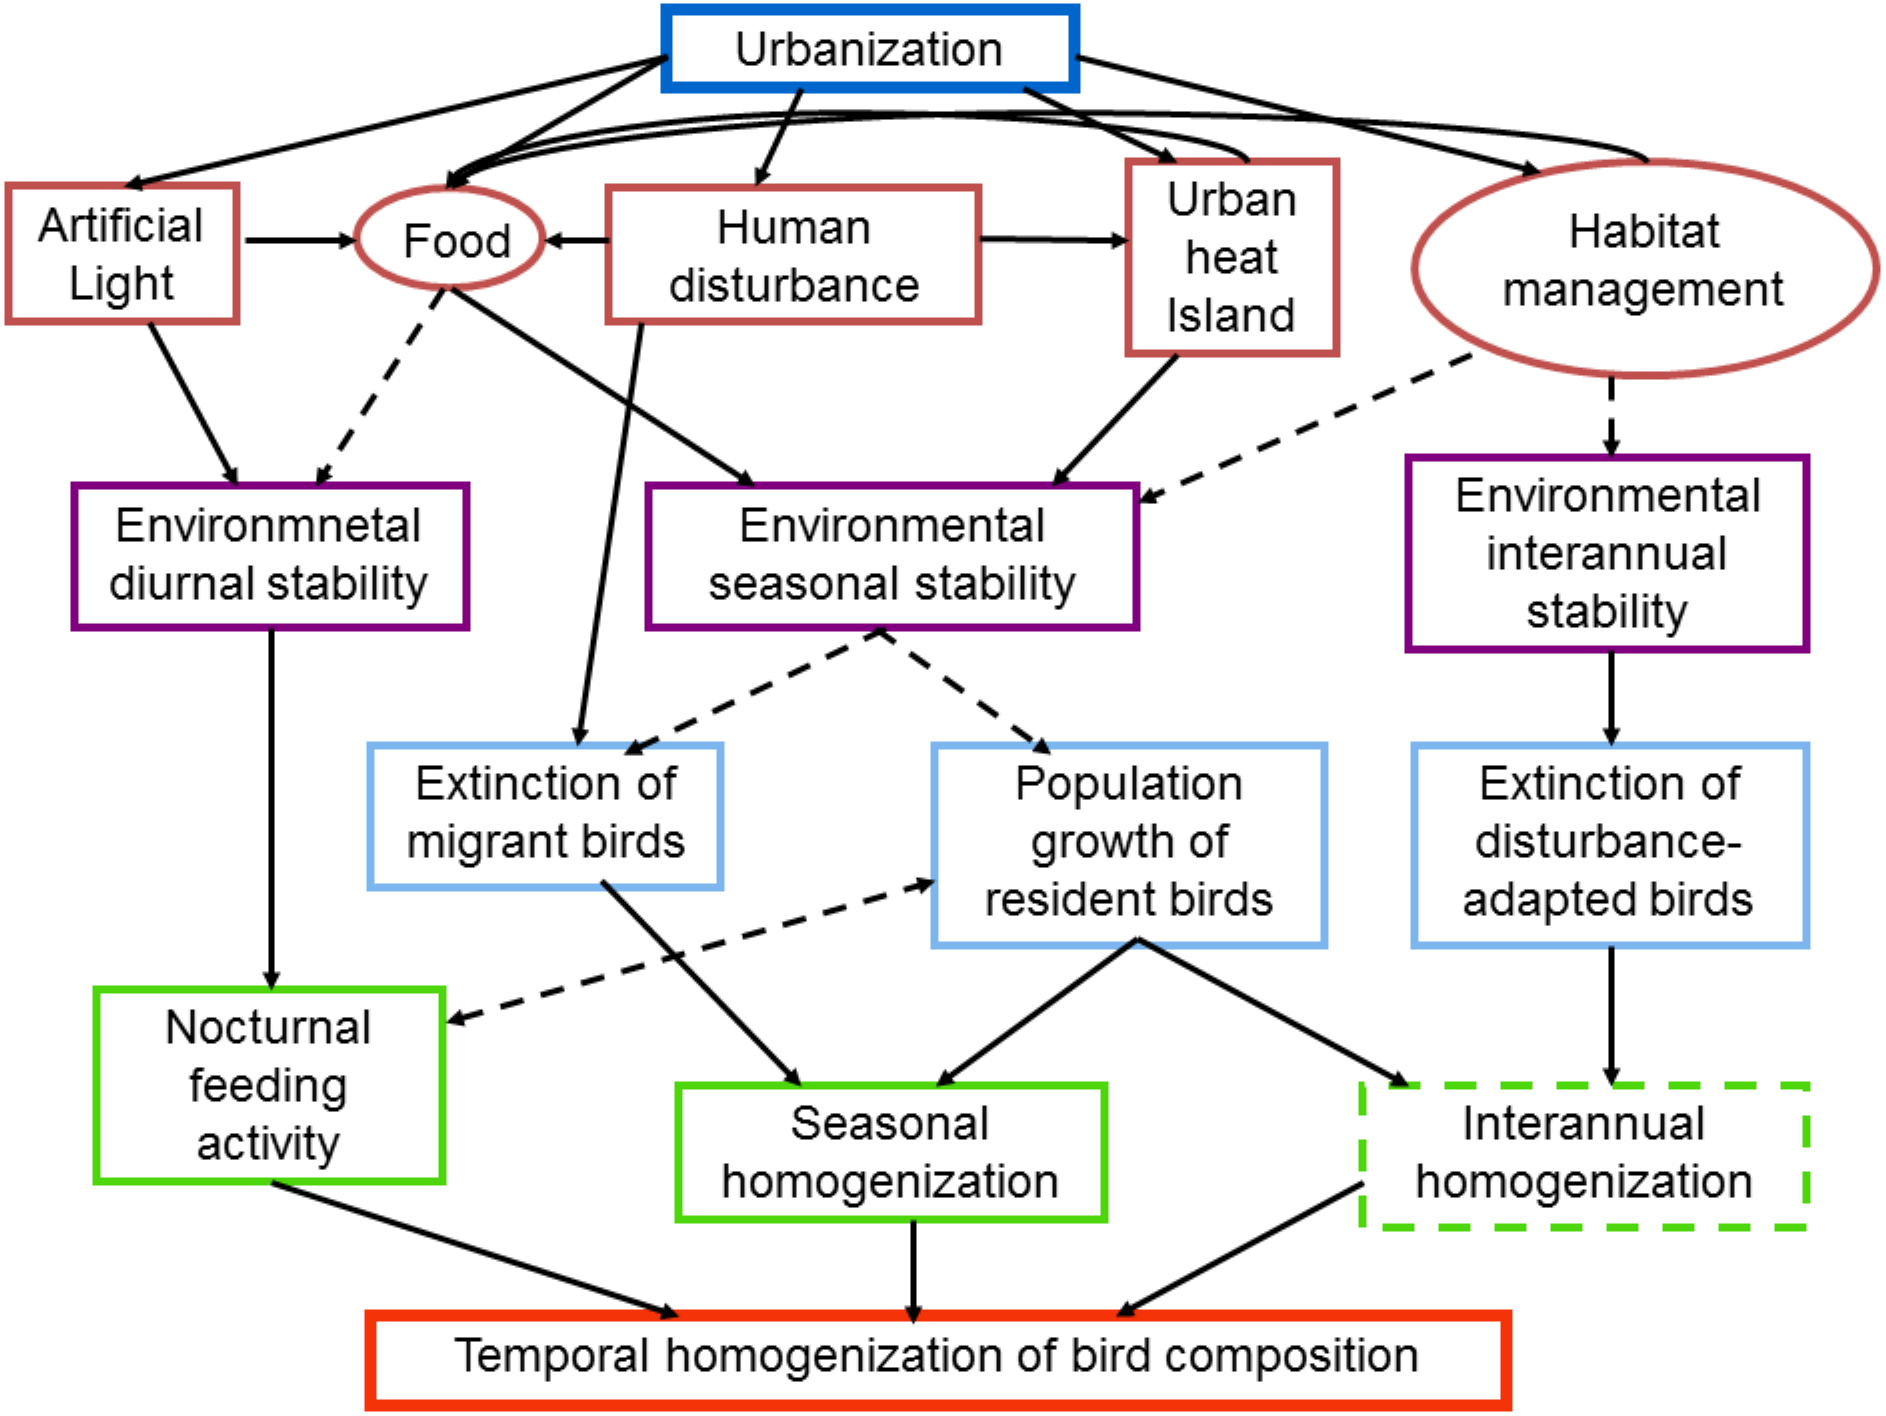 Urbanization, environmental stabilization and temporal